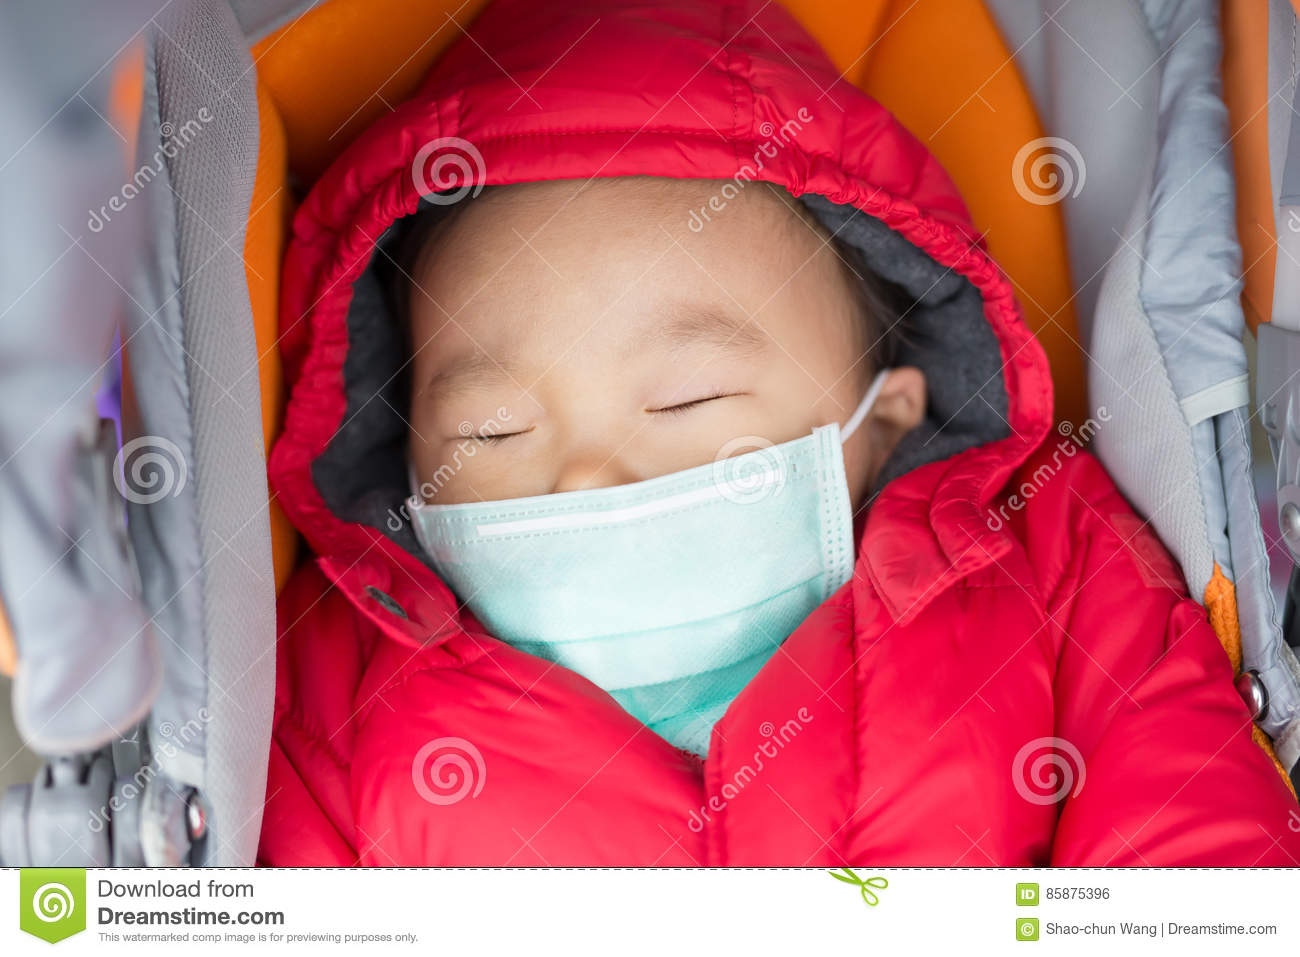 Baby Chinese Stock Fever Of - 85875396 Cute Image Photo Get Cold